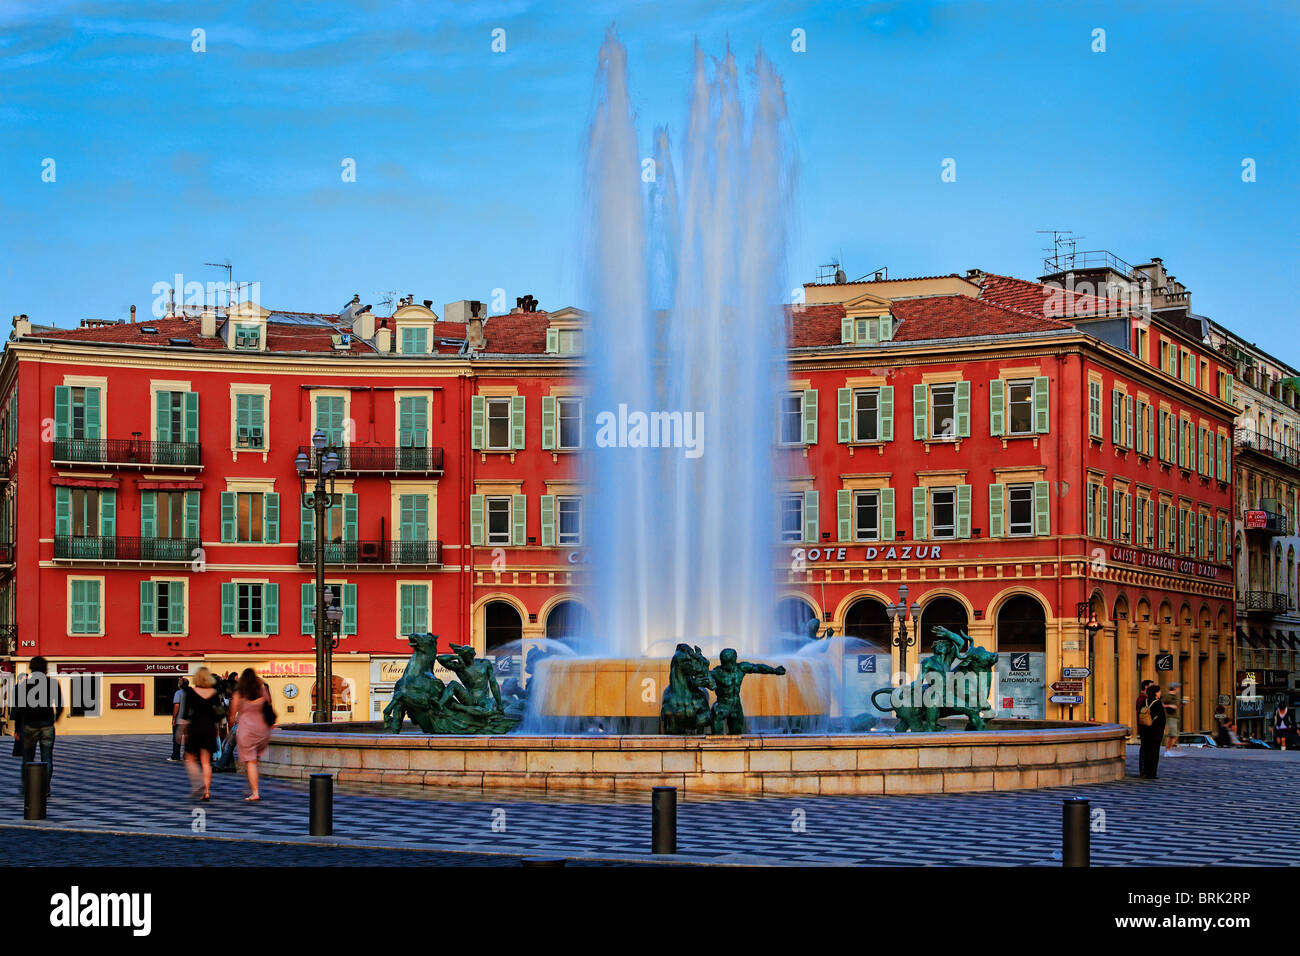 Fountain at Place Massena in Nice, France - Stock Image